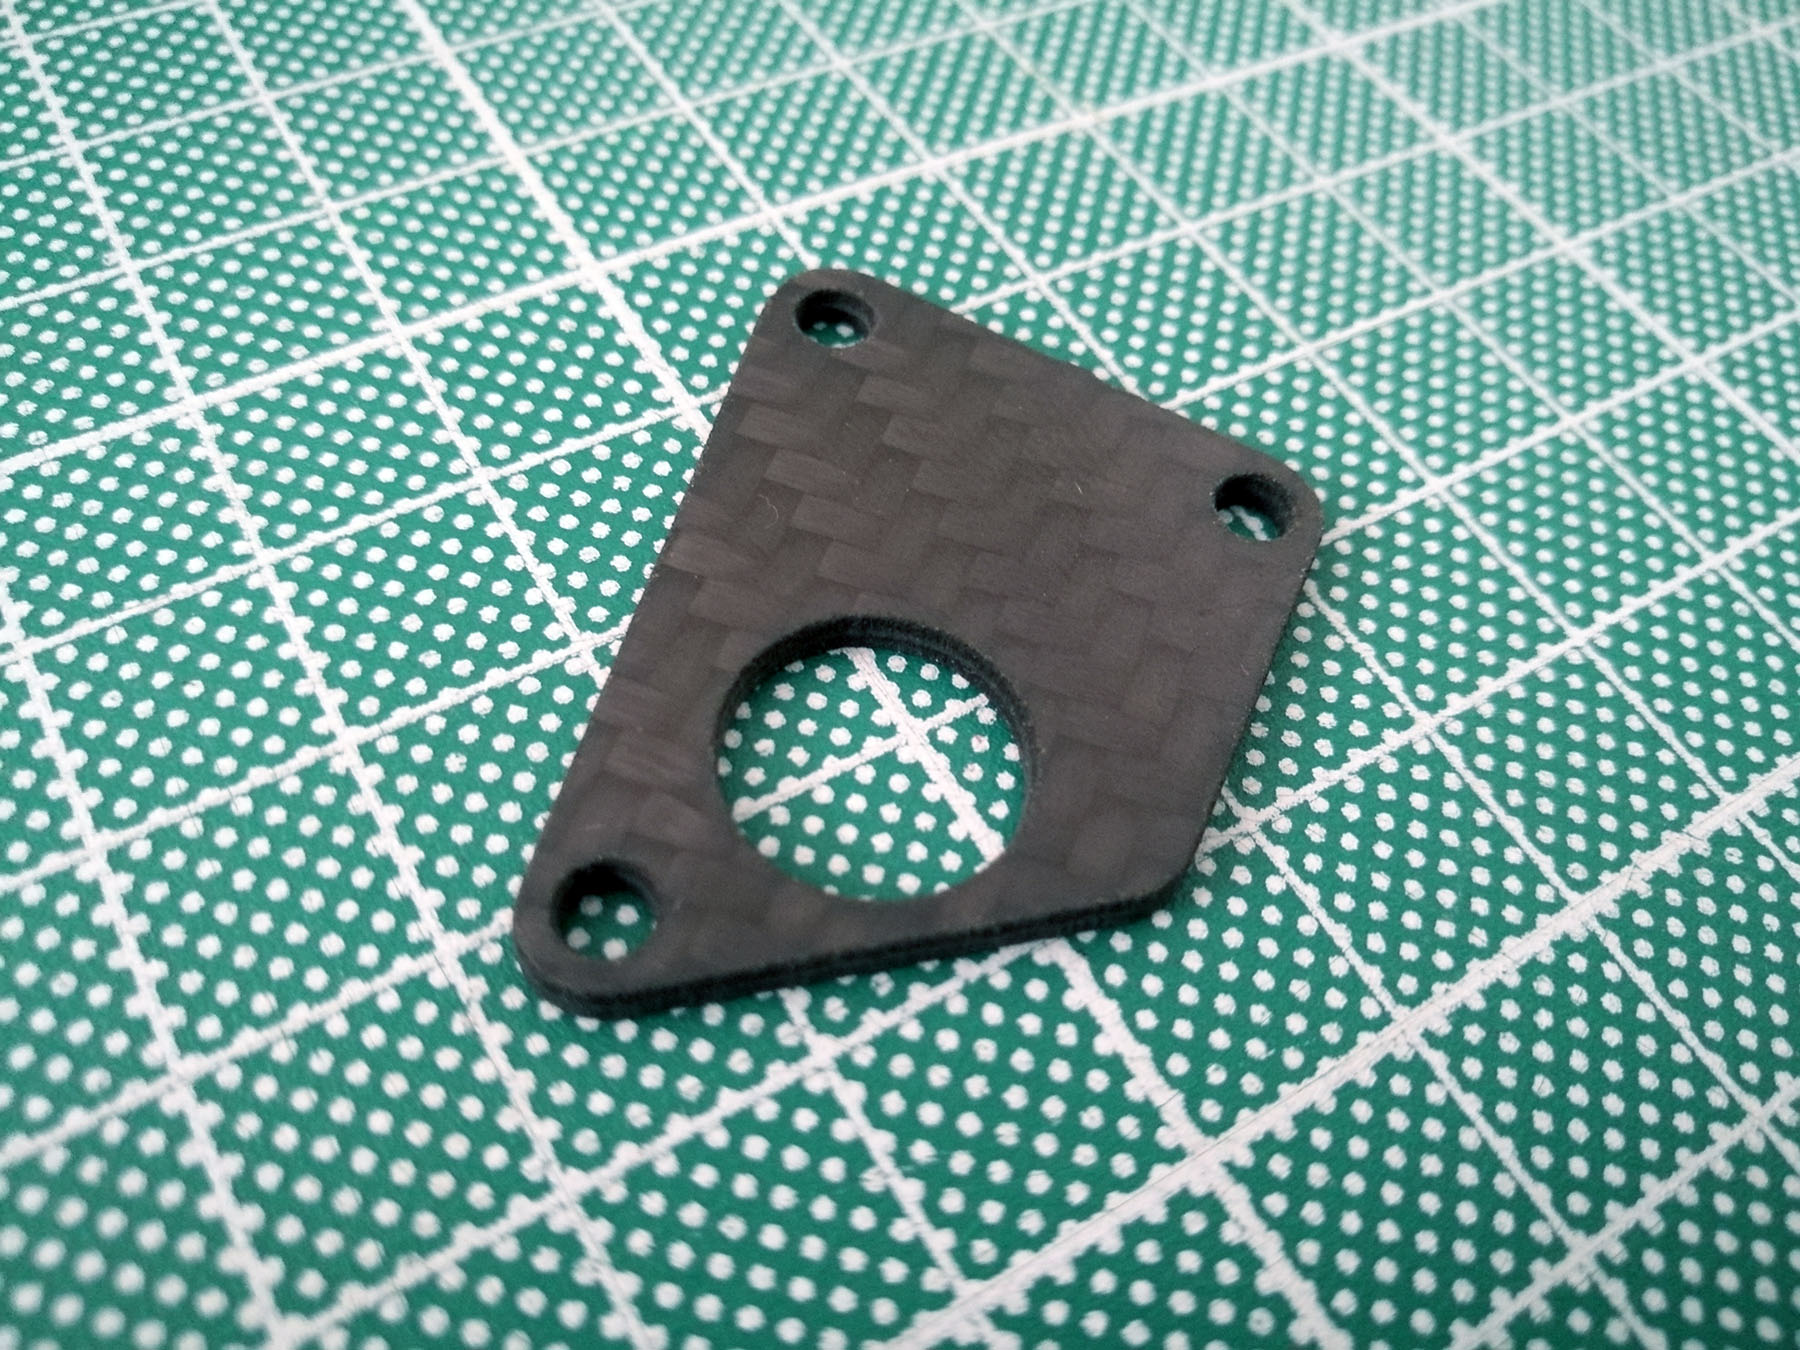 tamiya wrenchdog tr-15t gearbox plate